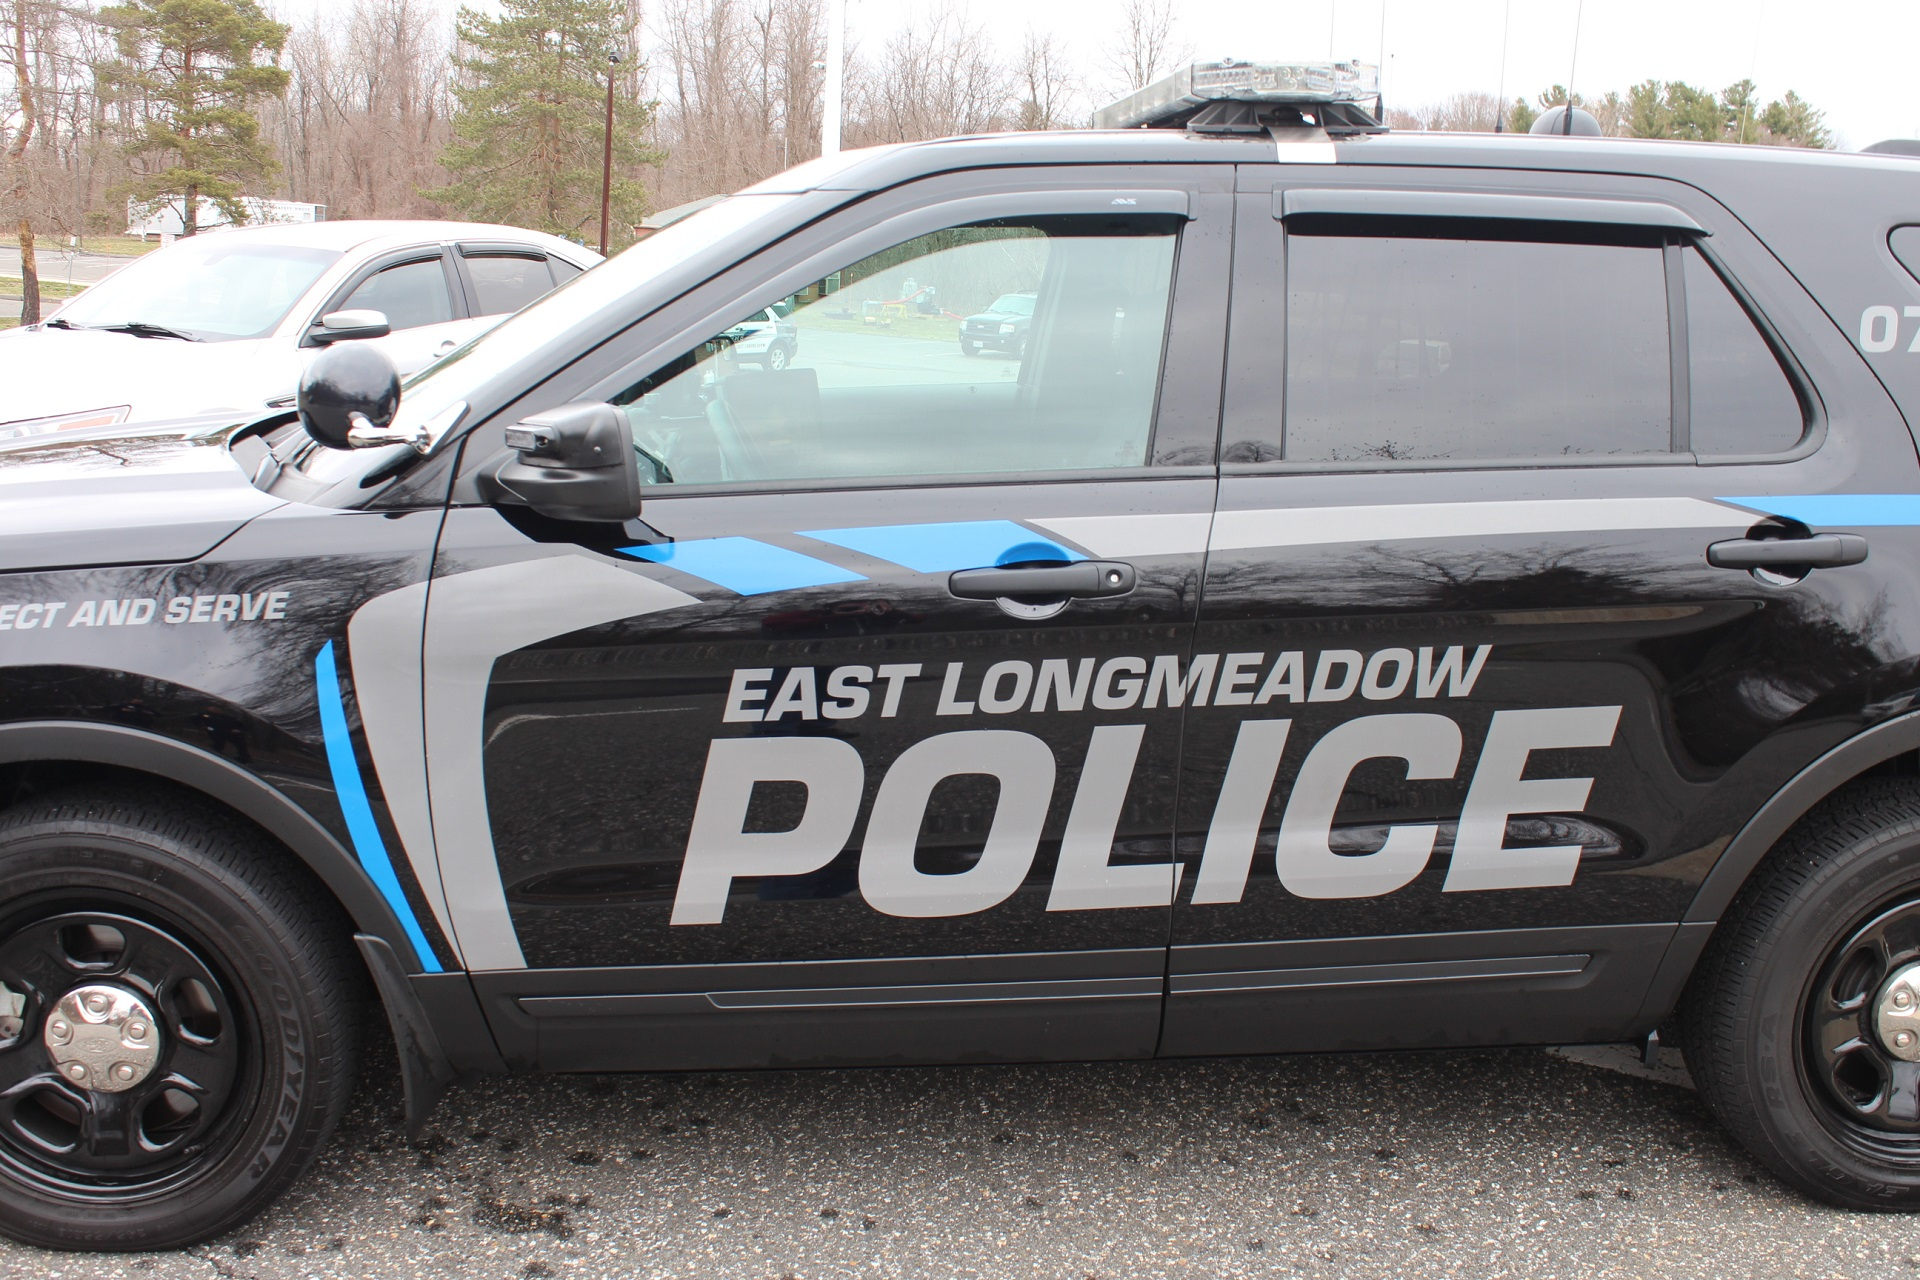 East_Longmeadow_Police_Vehicle2_1551691486524.JPG